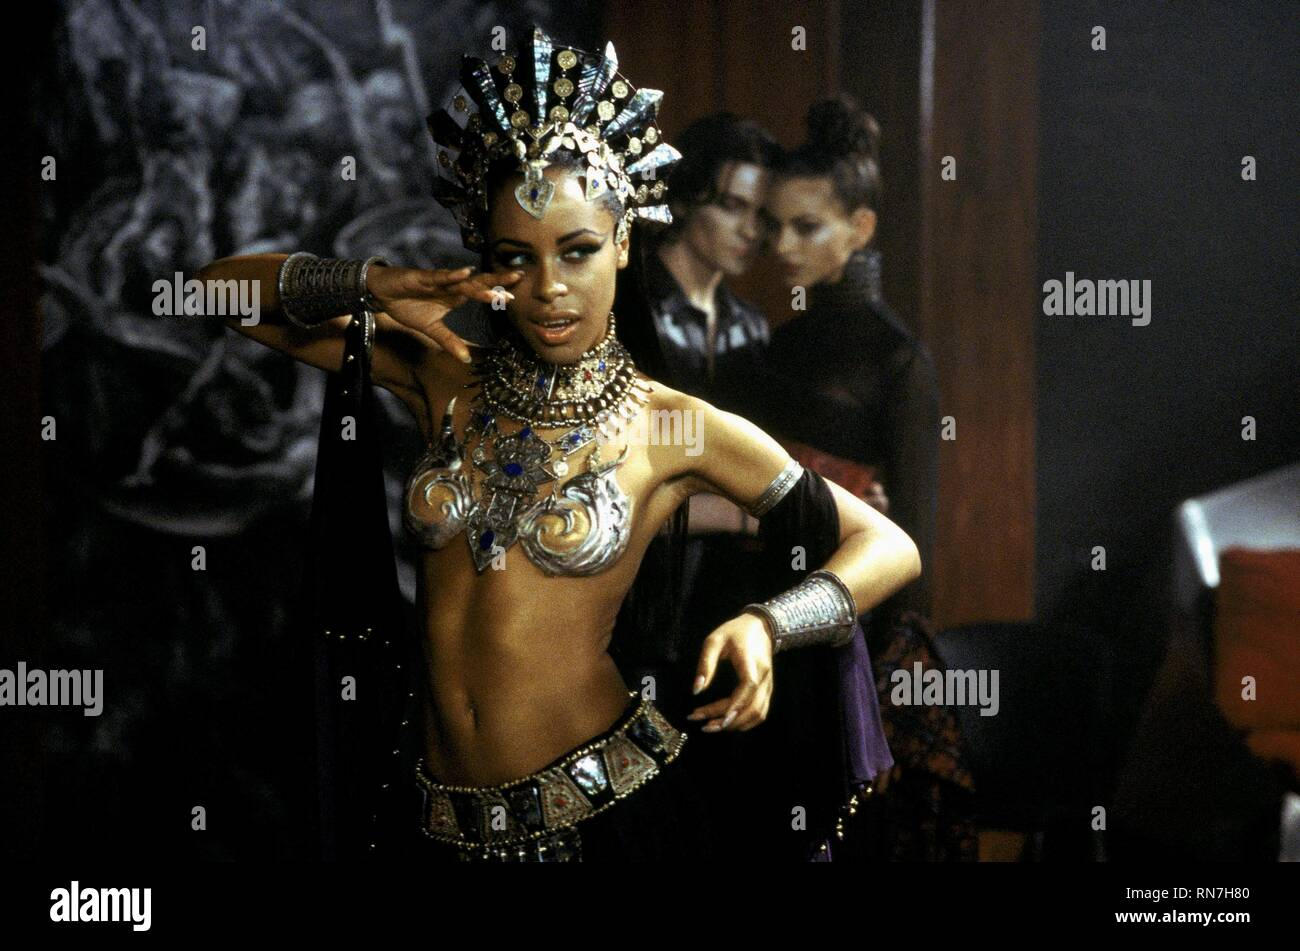 QUEEN OF THE DAMNED, AALIYAH, 2002 - Stock Image